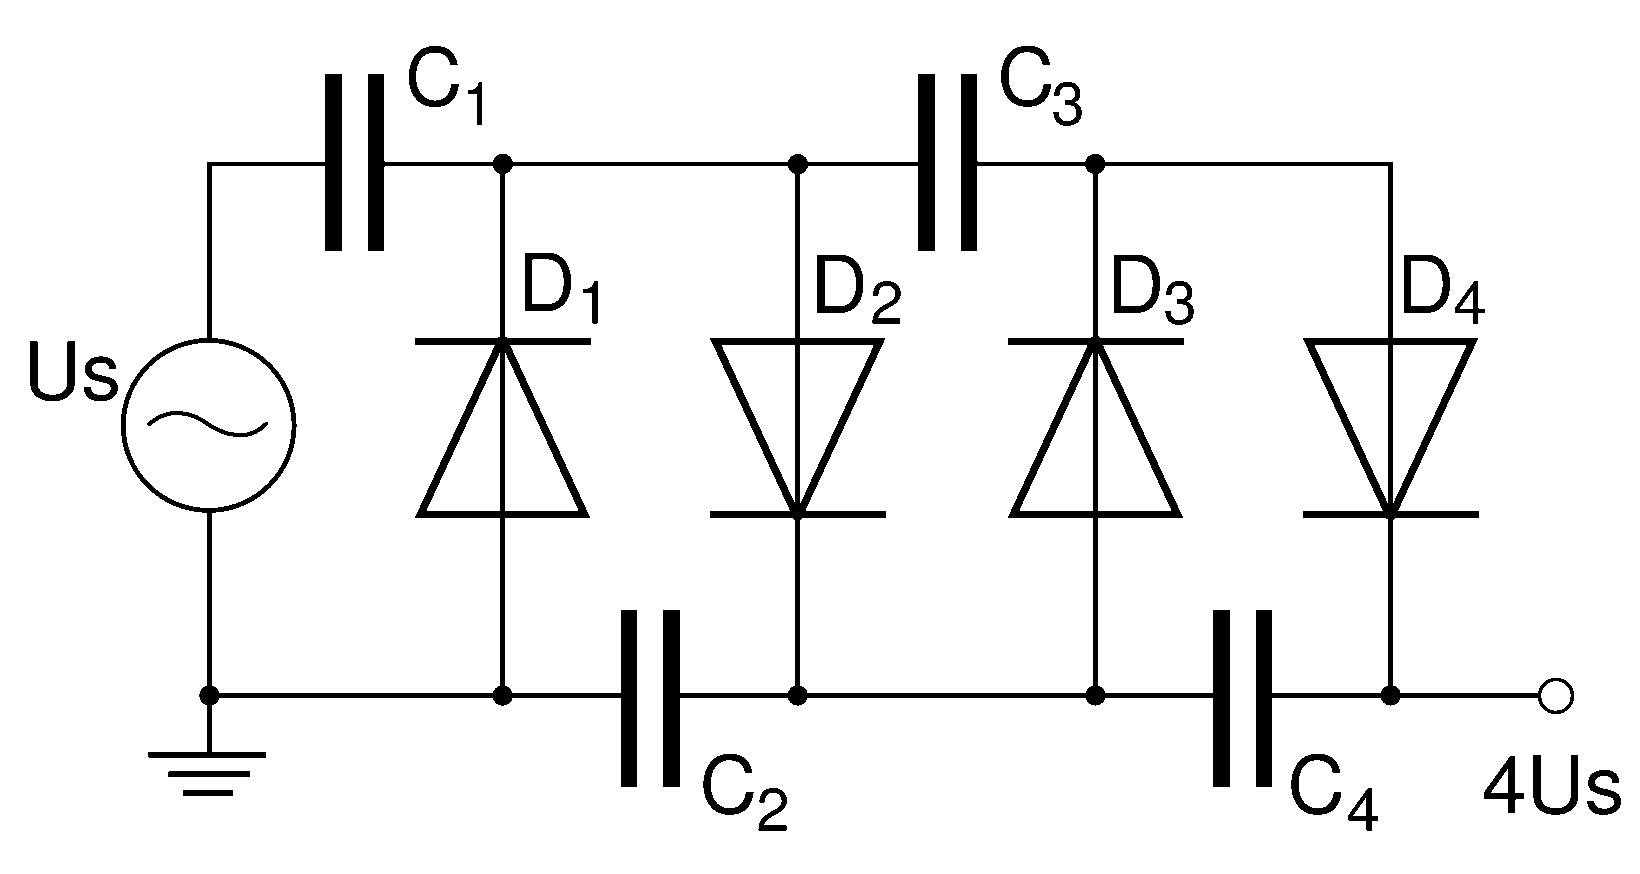 Voltage Multiplier diagram